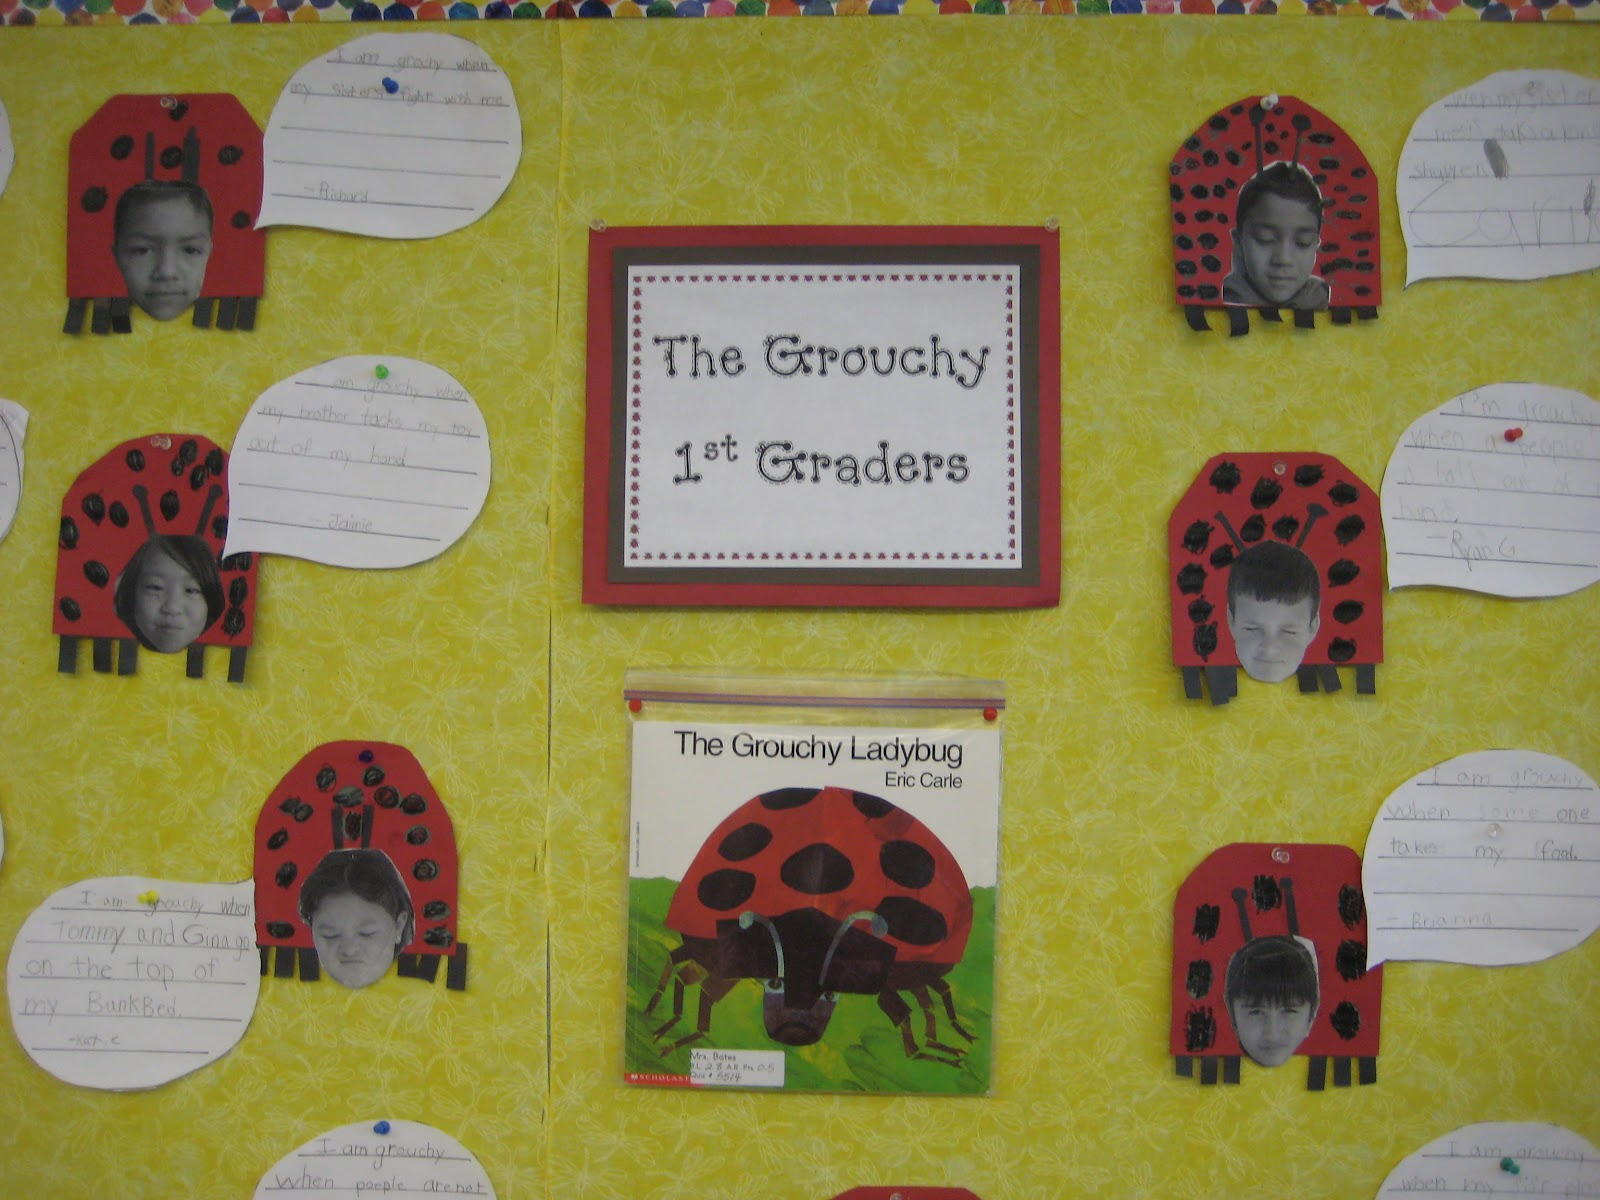 Finally In First The Grouchy Ladybug